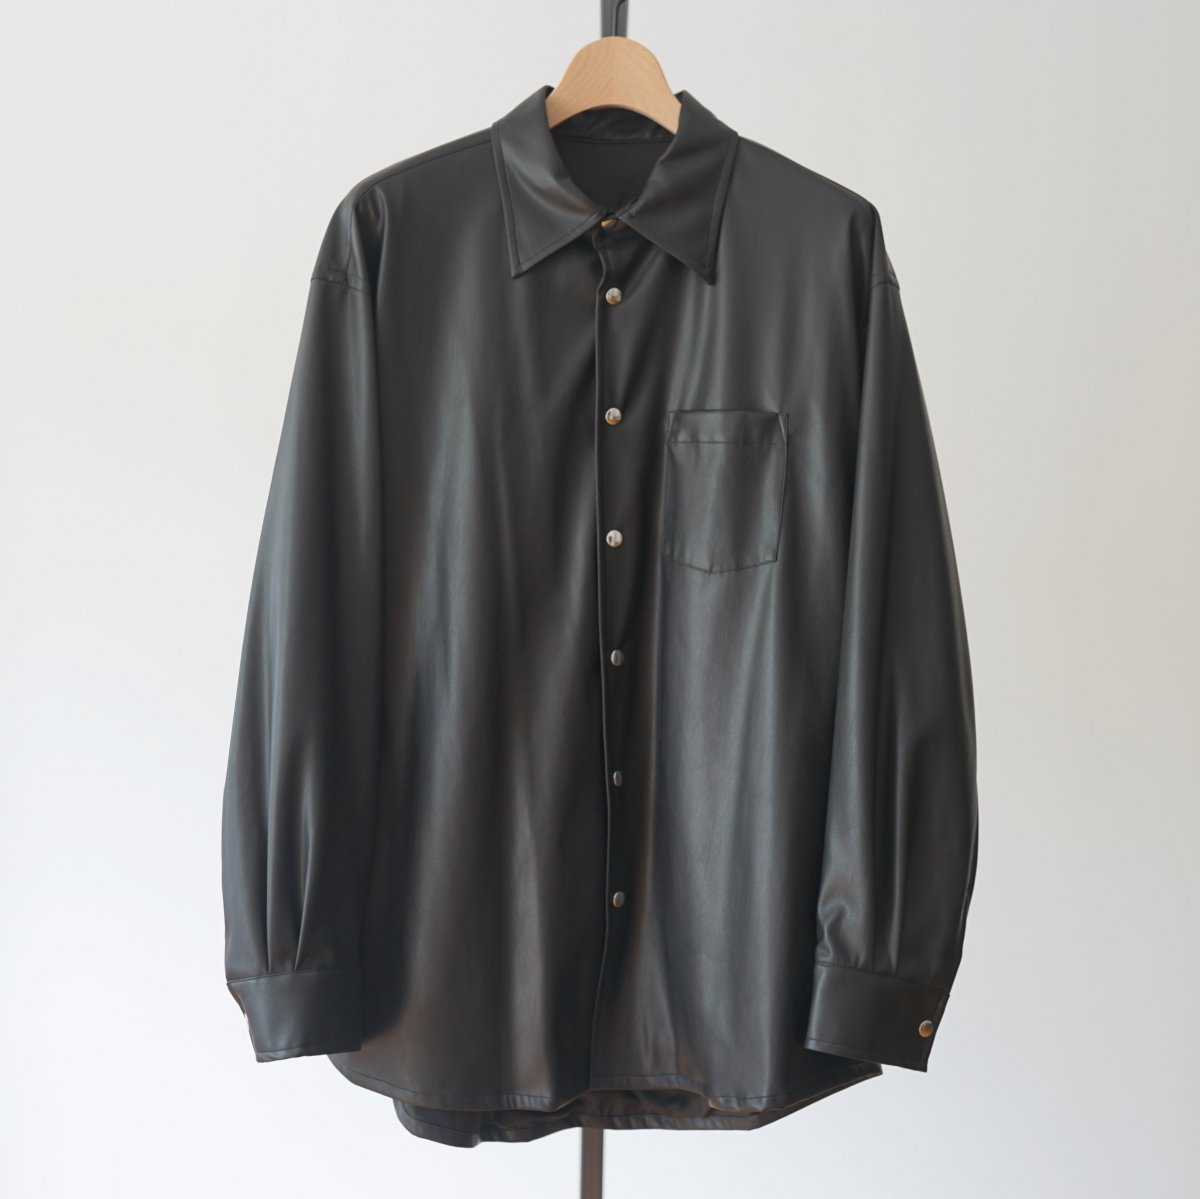 【ALLEGE アレッジ】SYNTHETIC LEATHER SHIRT - BLACK